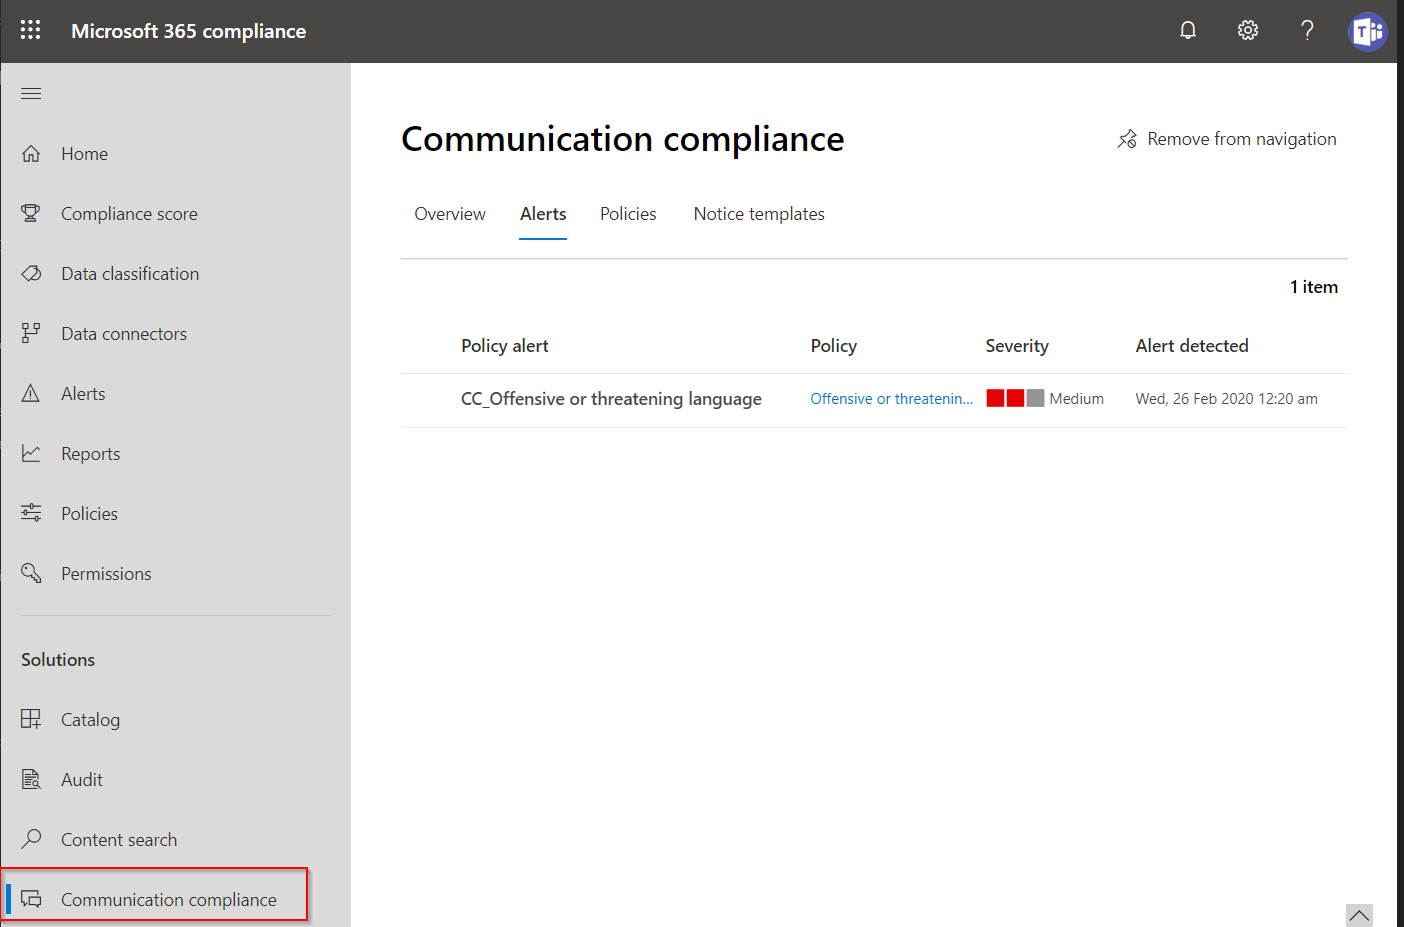 Microsoft Teams Communication Compliance